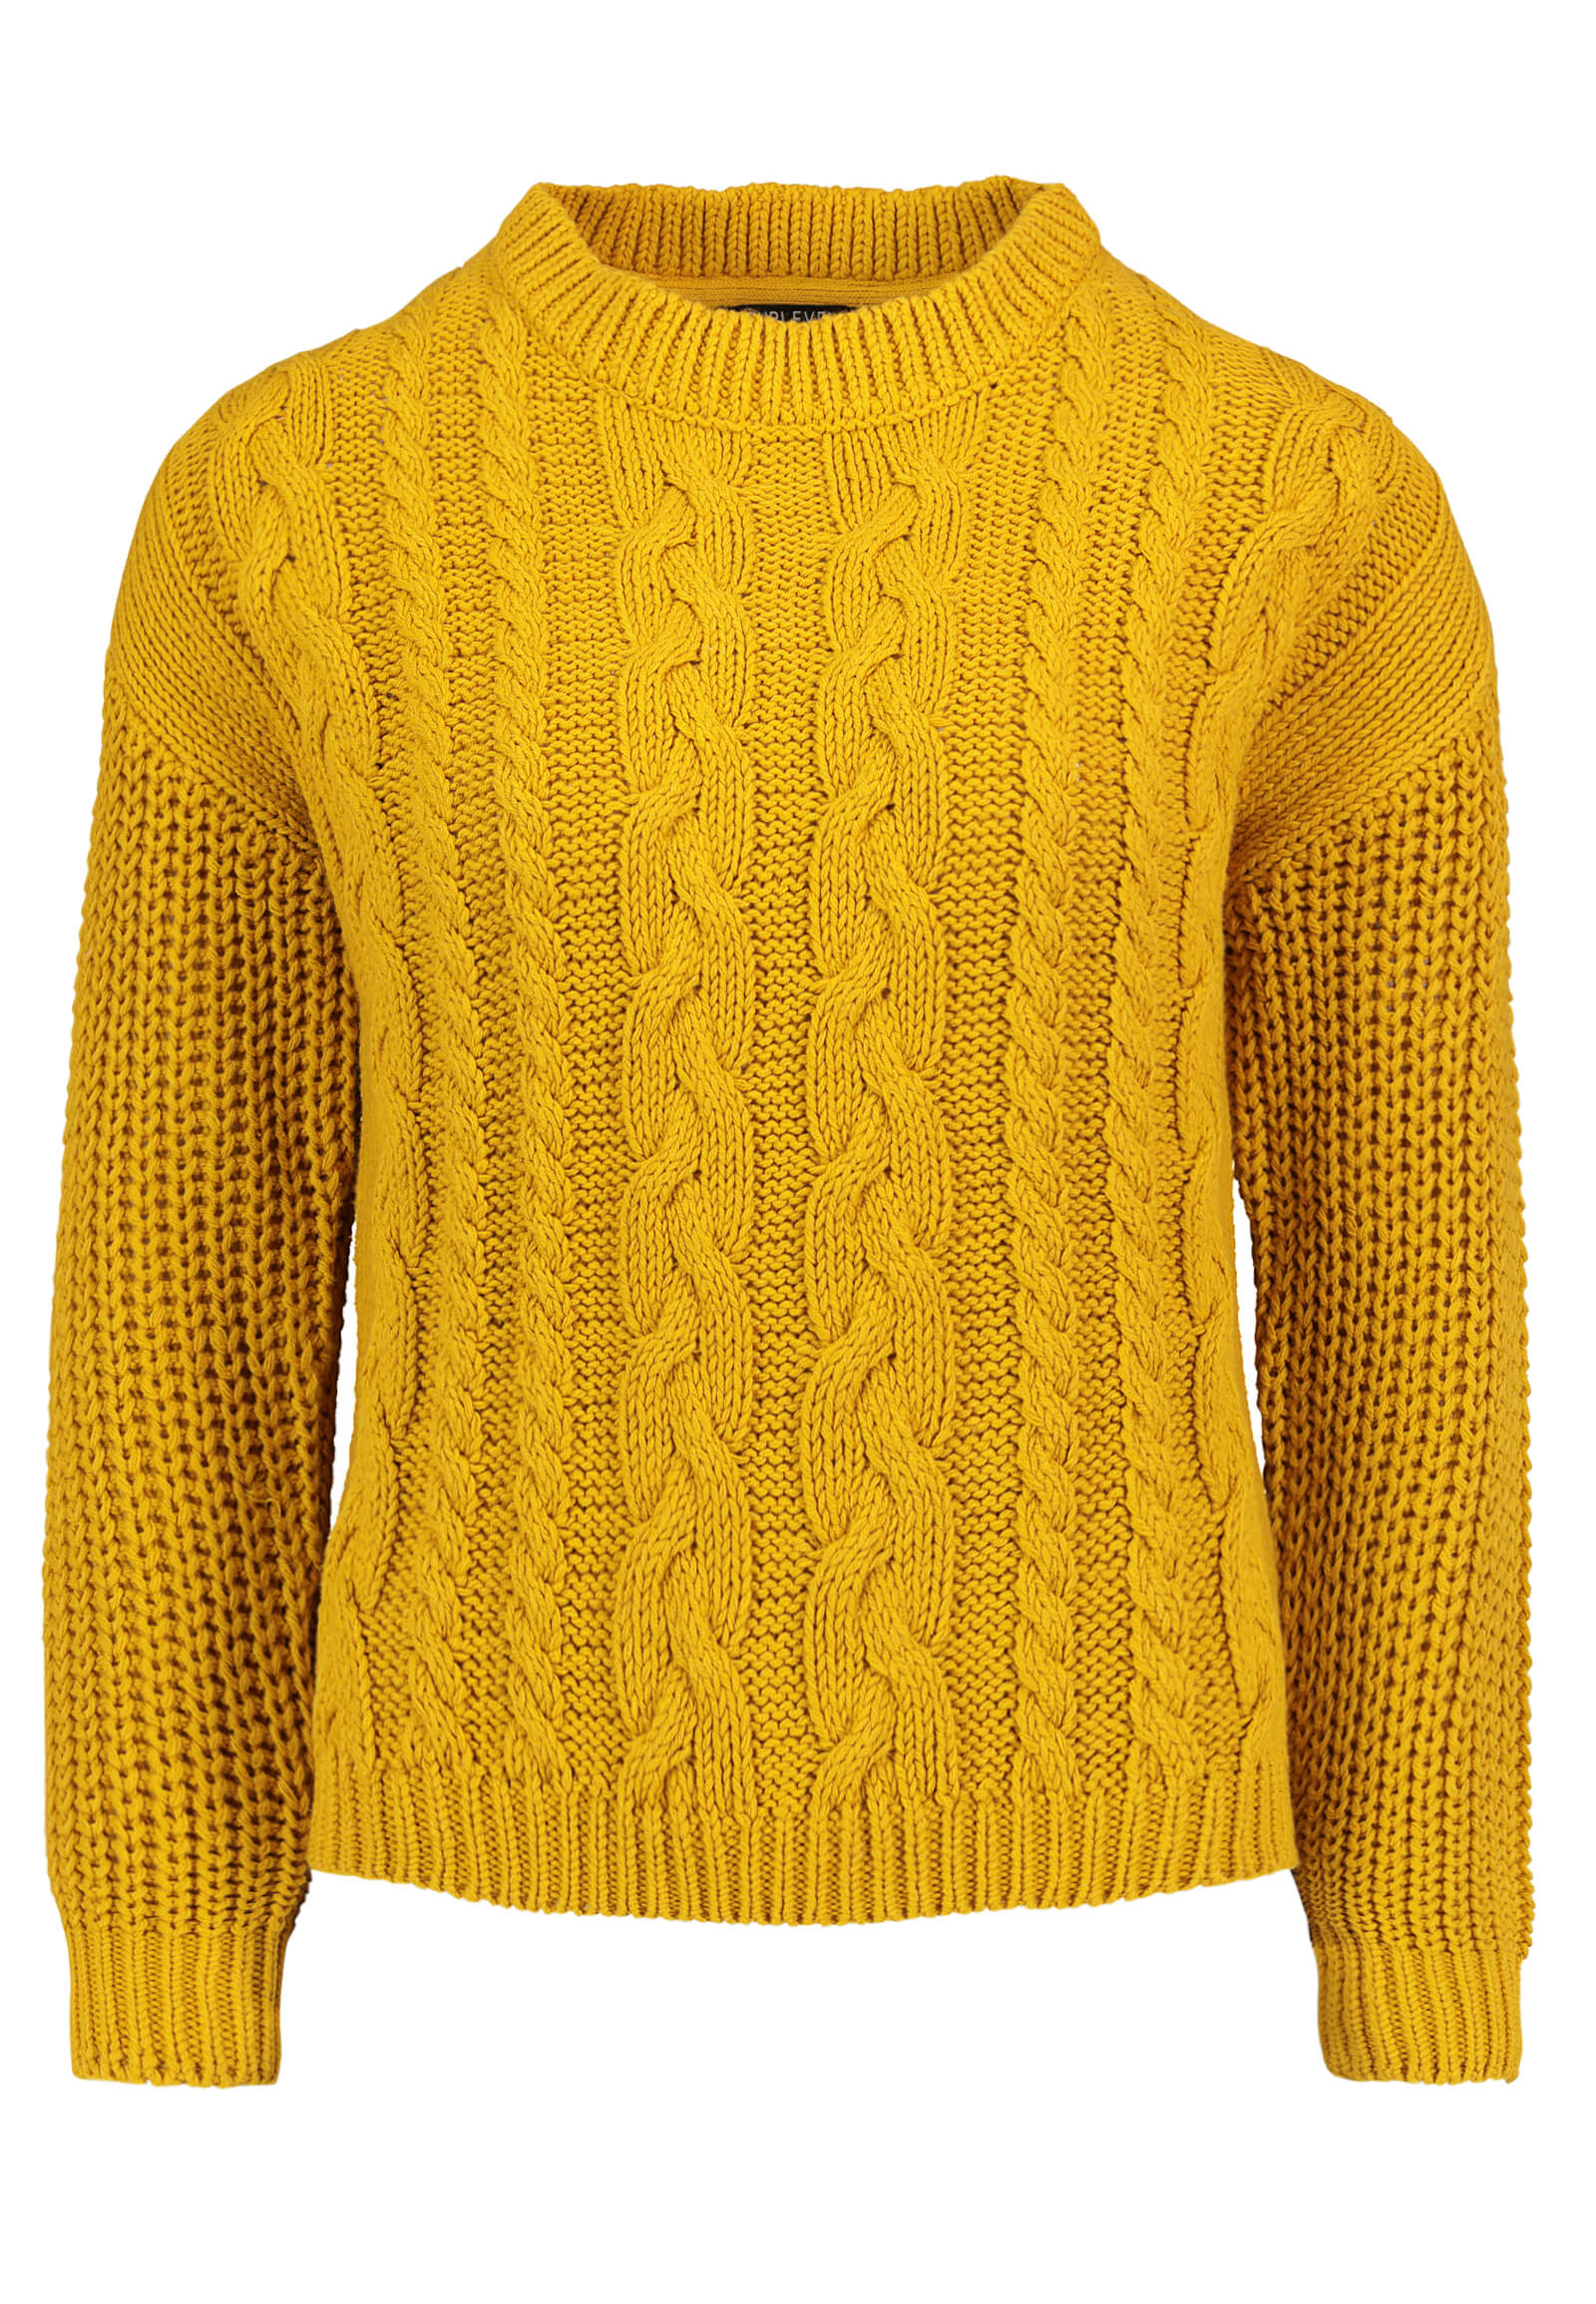 Lockerer Grobstrickpullover